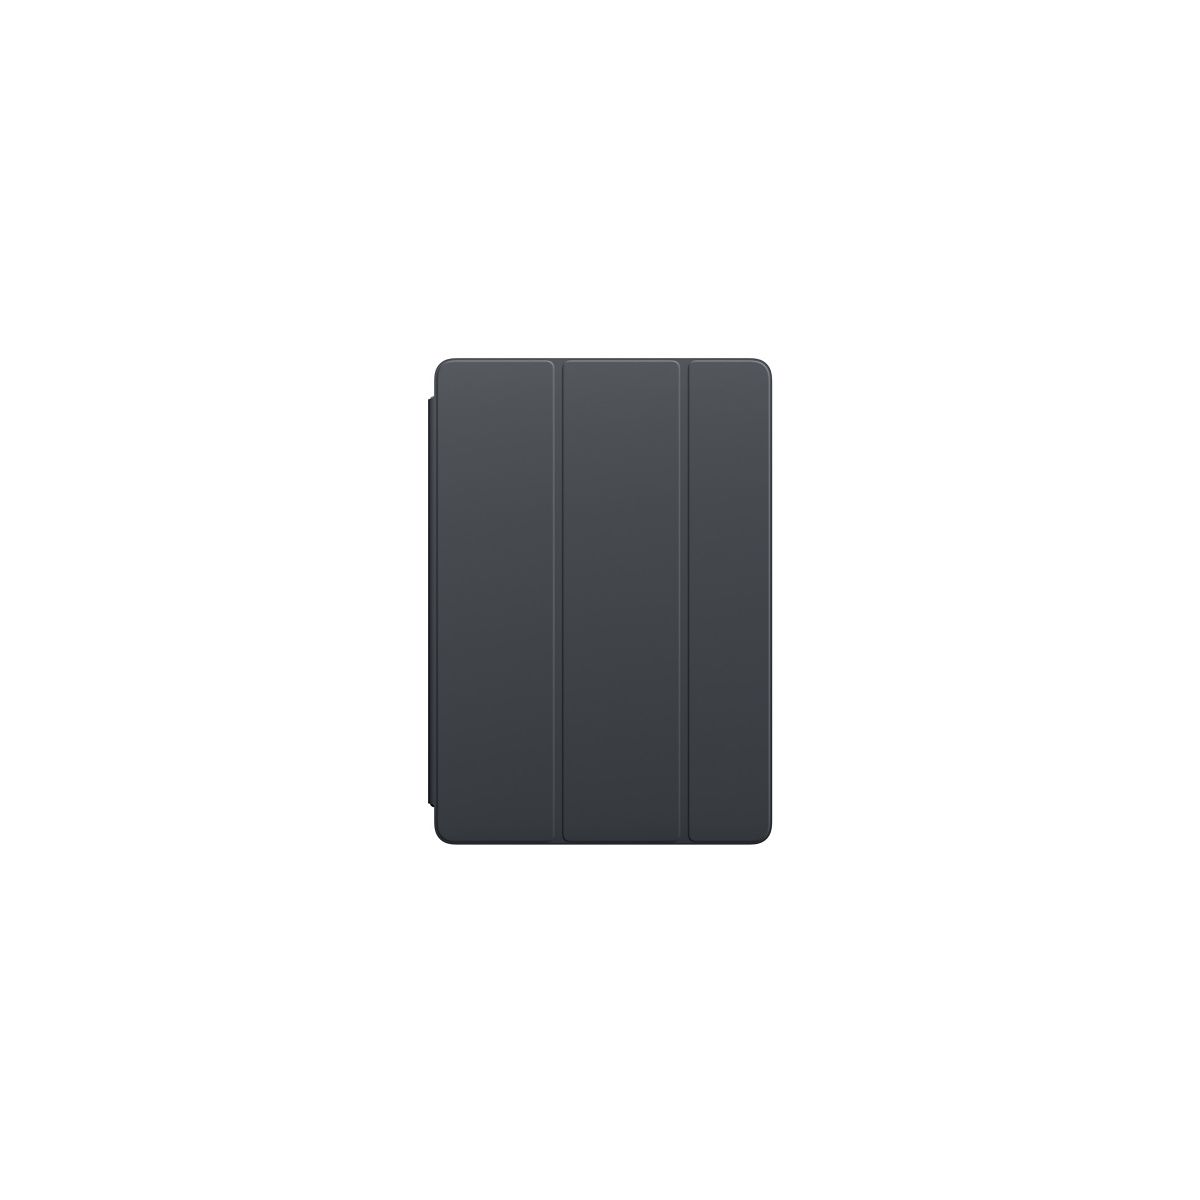 Etui APPLE iPad Pro 10.5 gris anthracite (photo)